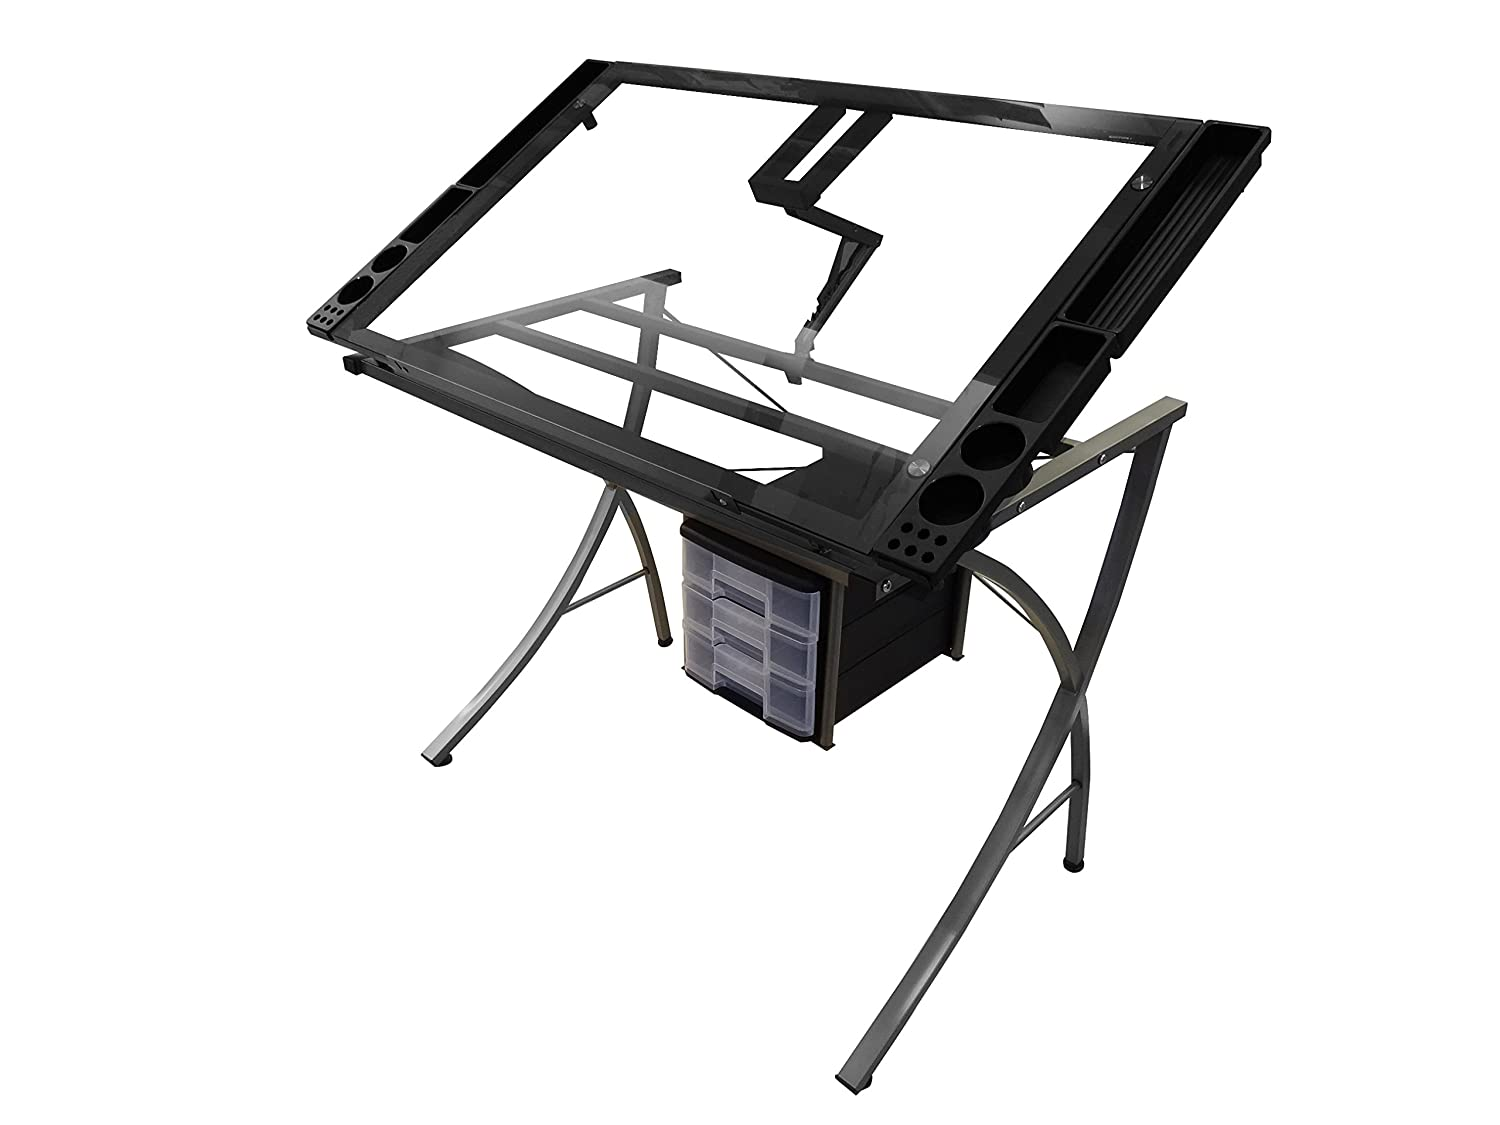 Amazon.com: Artieu0027s Studio Office Drafting Table Art Drawing Adjustable  Craft Station: Office Products